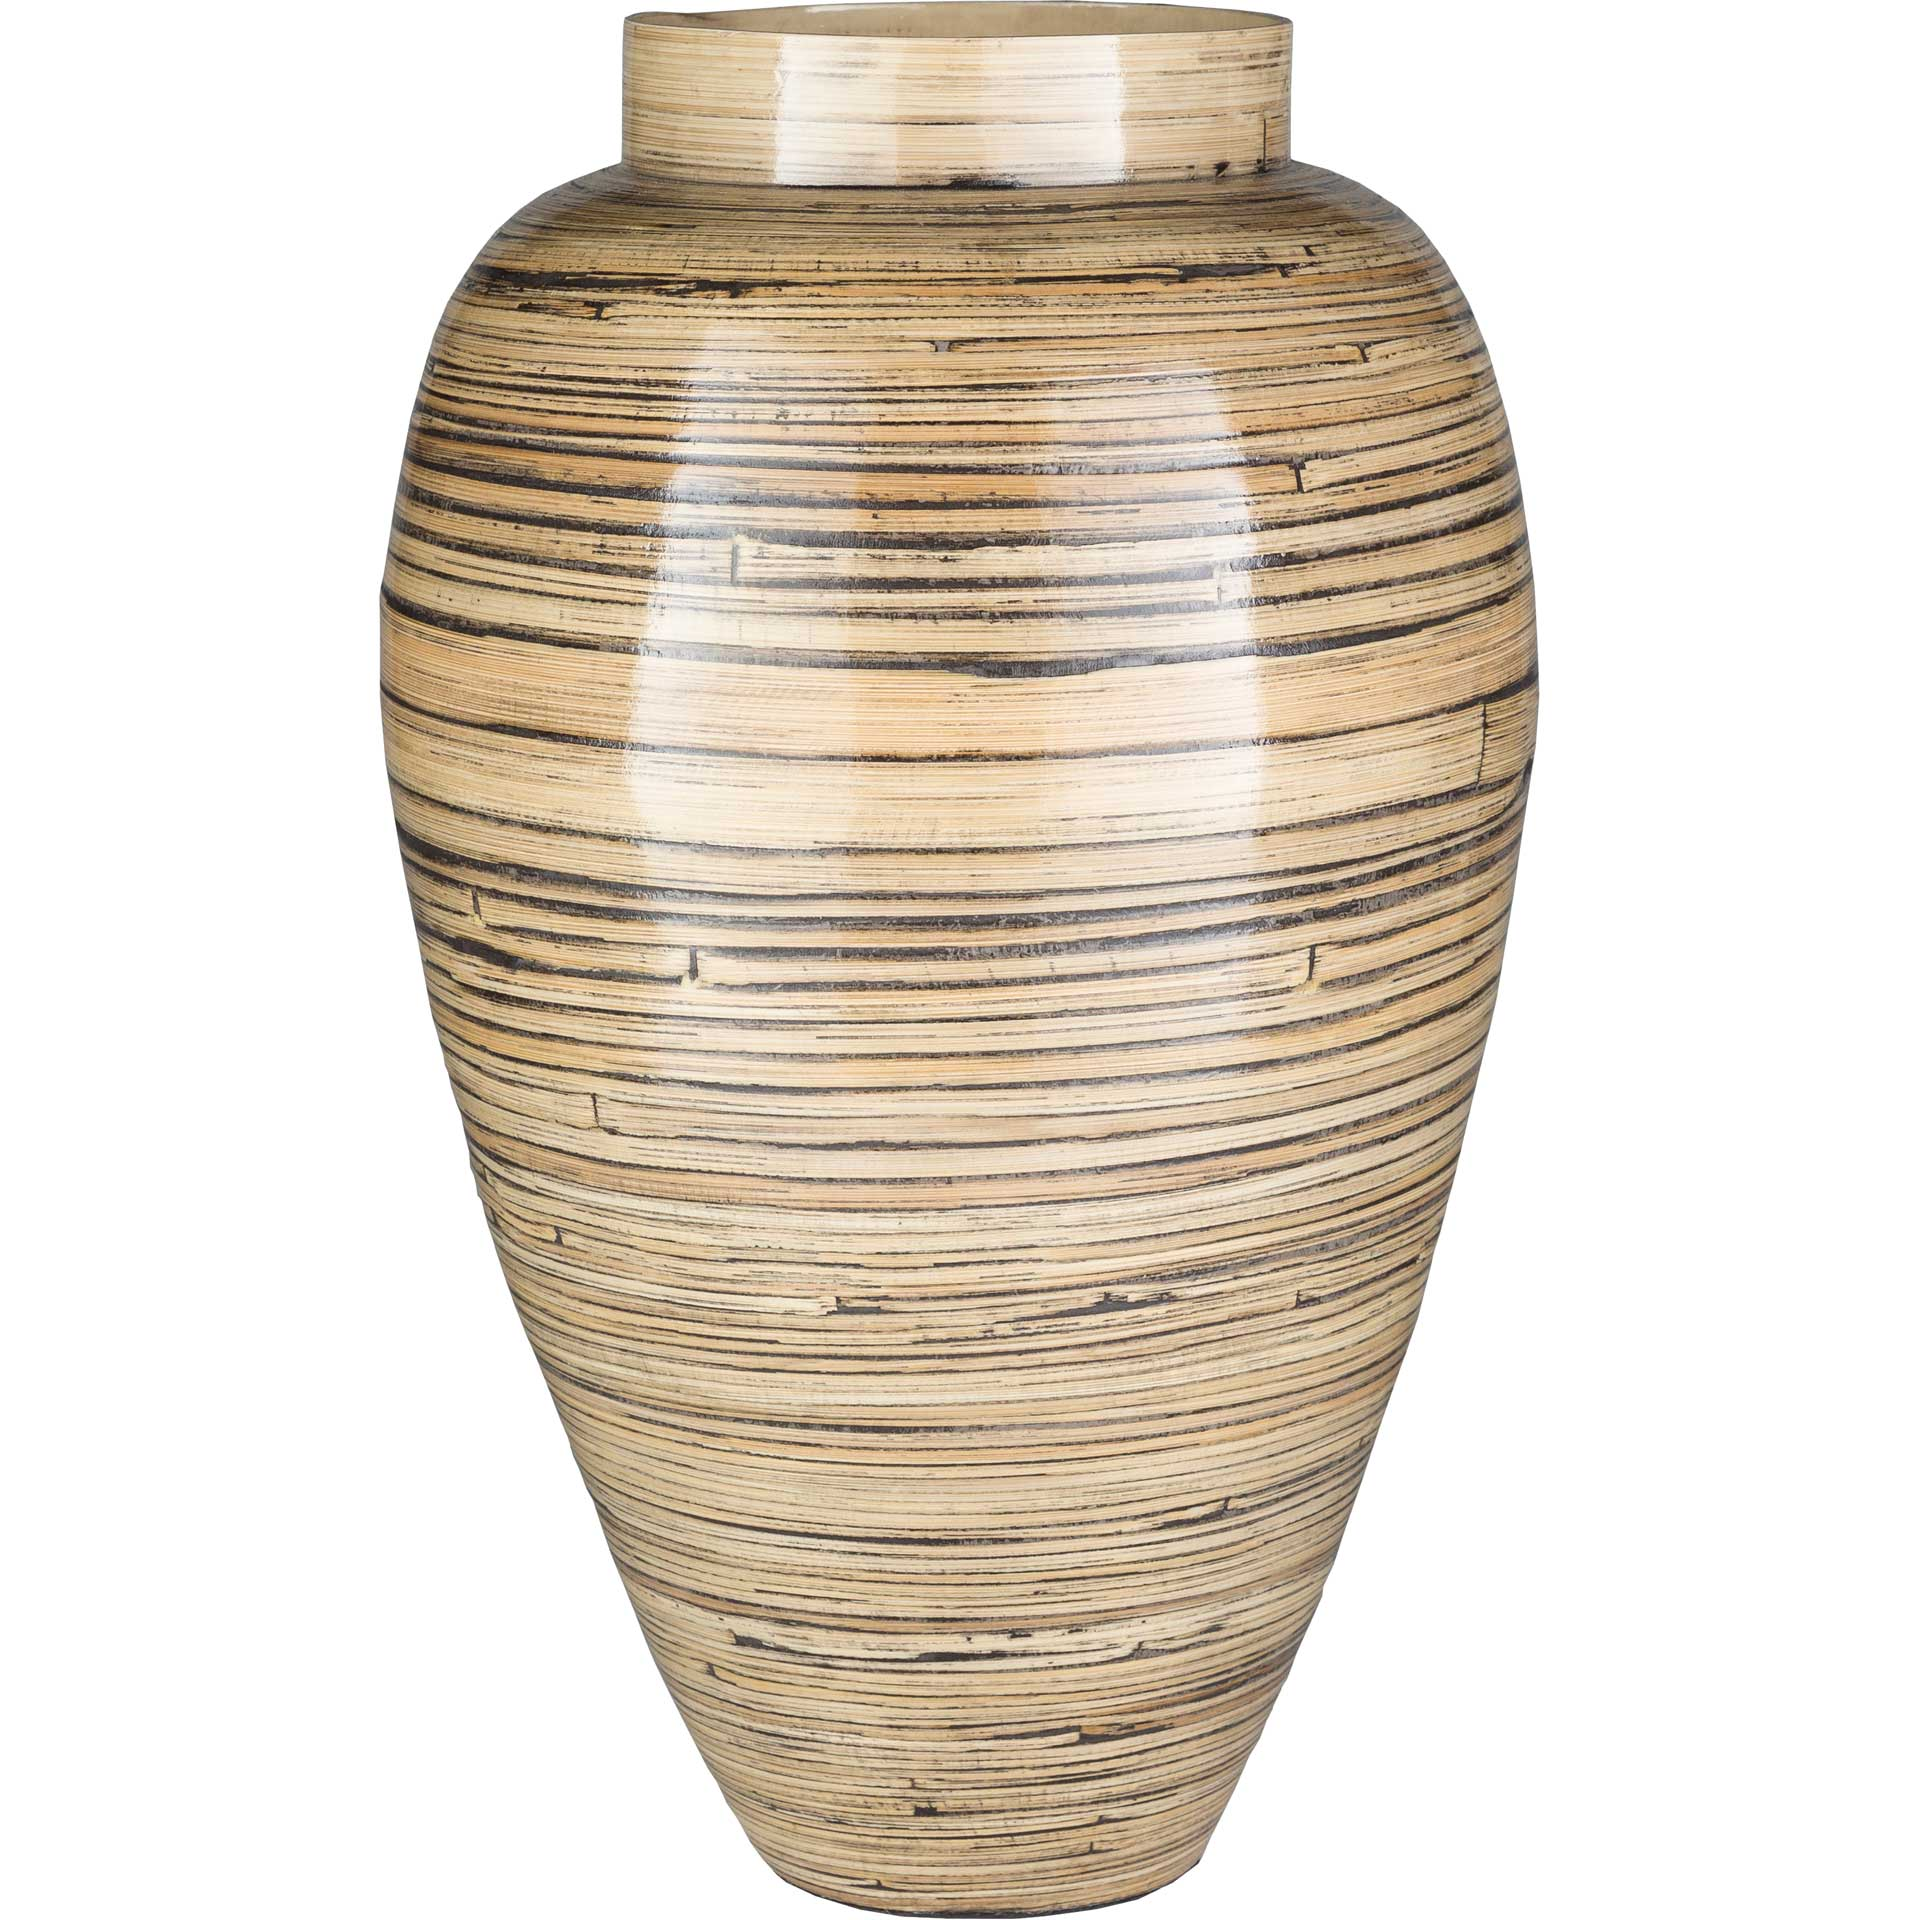 Cordin Garden Vase Natural Medium